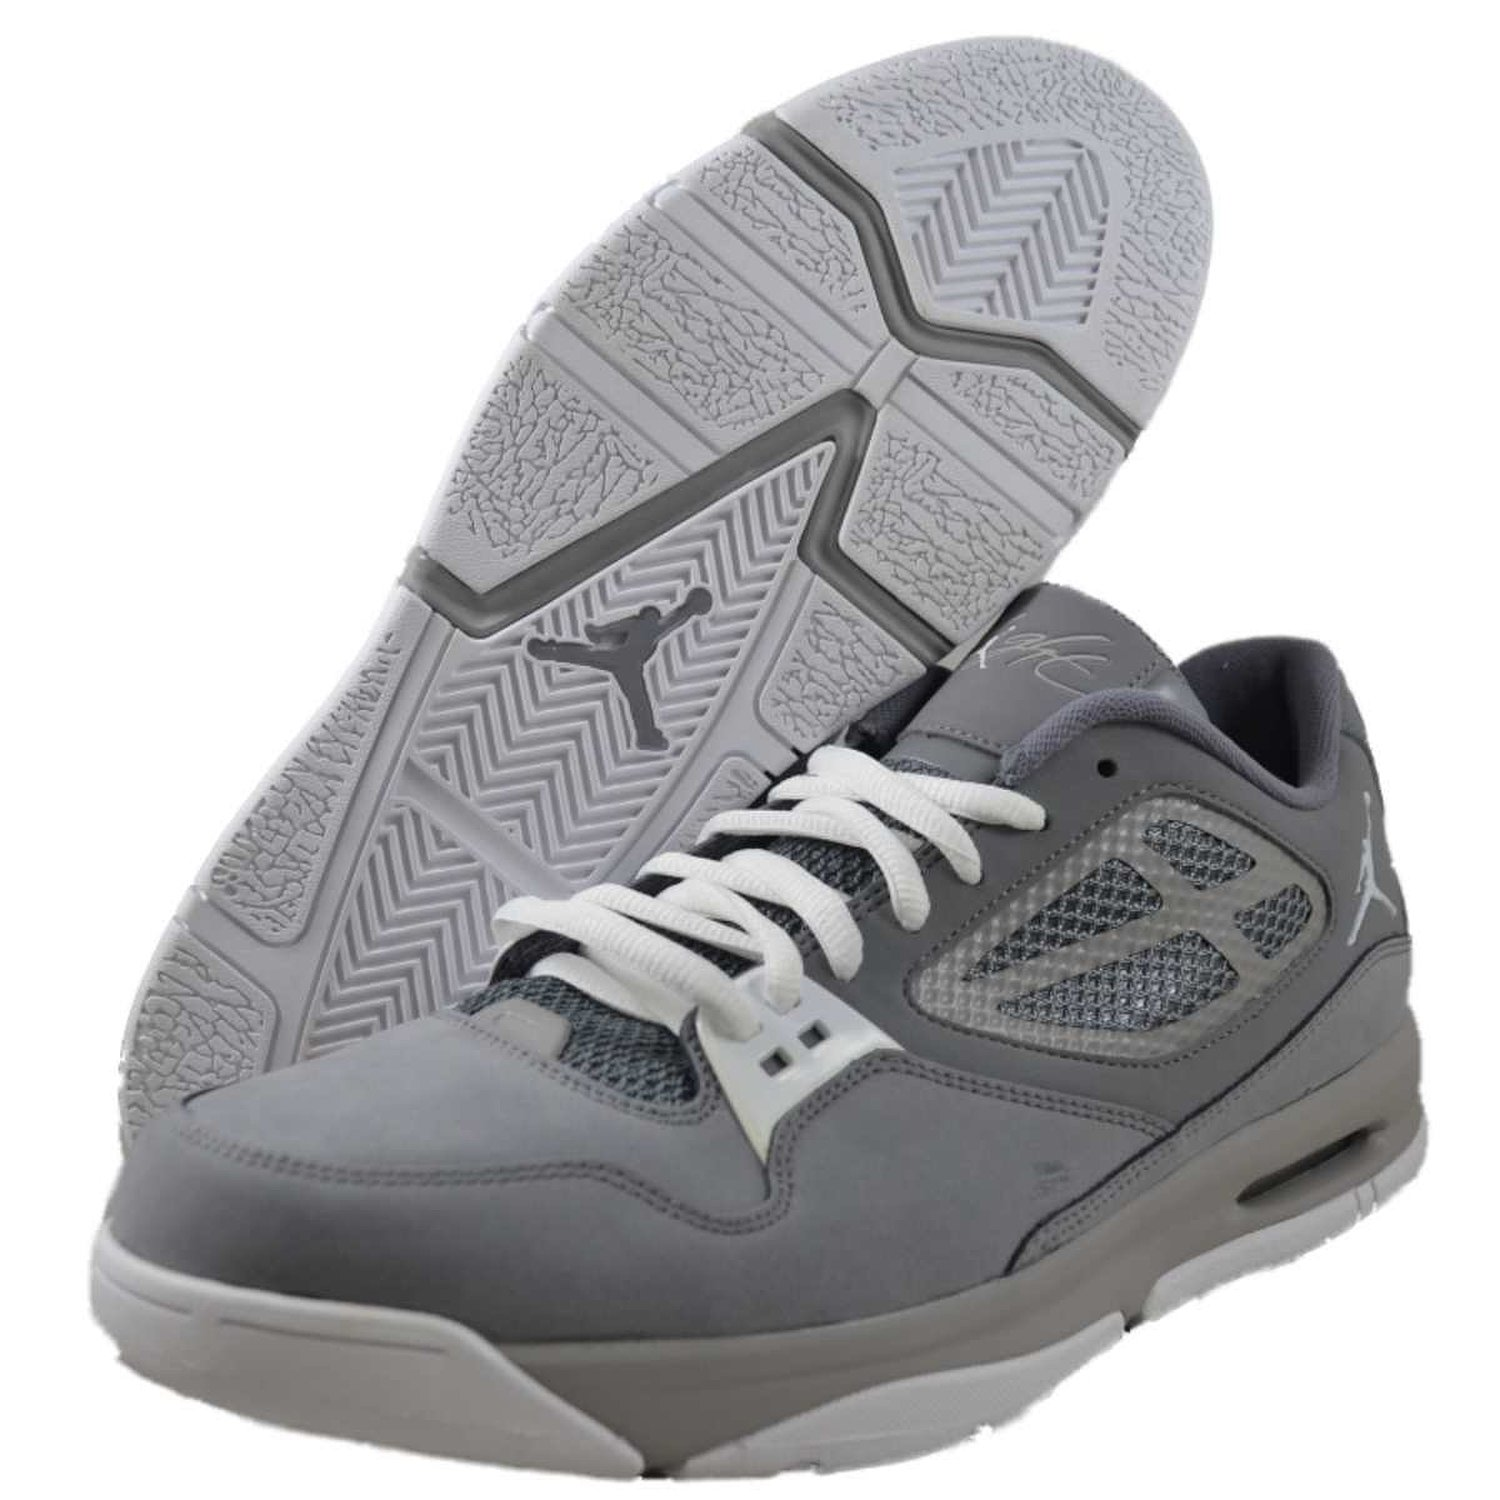 premium selection 07012 fea47 Get Quotations · Nike Jordan Flight 23 RST Low Men s Basketball Shoes